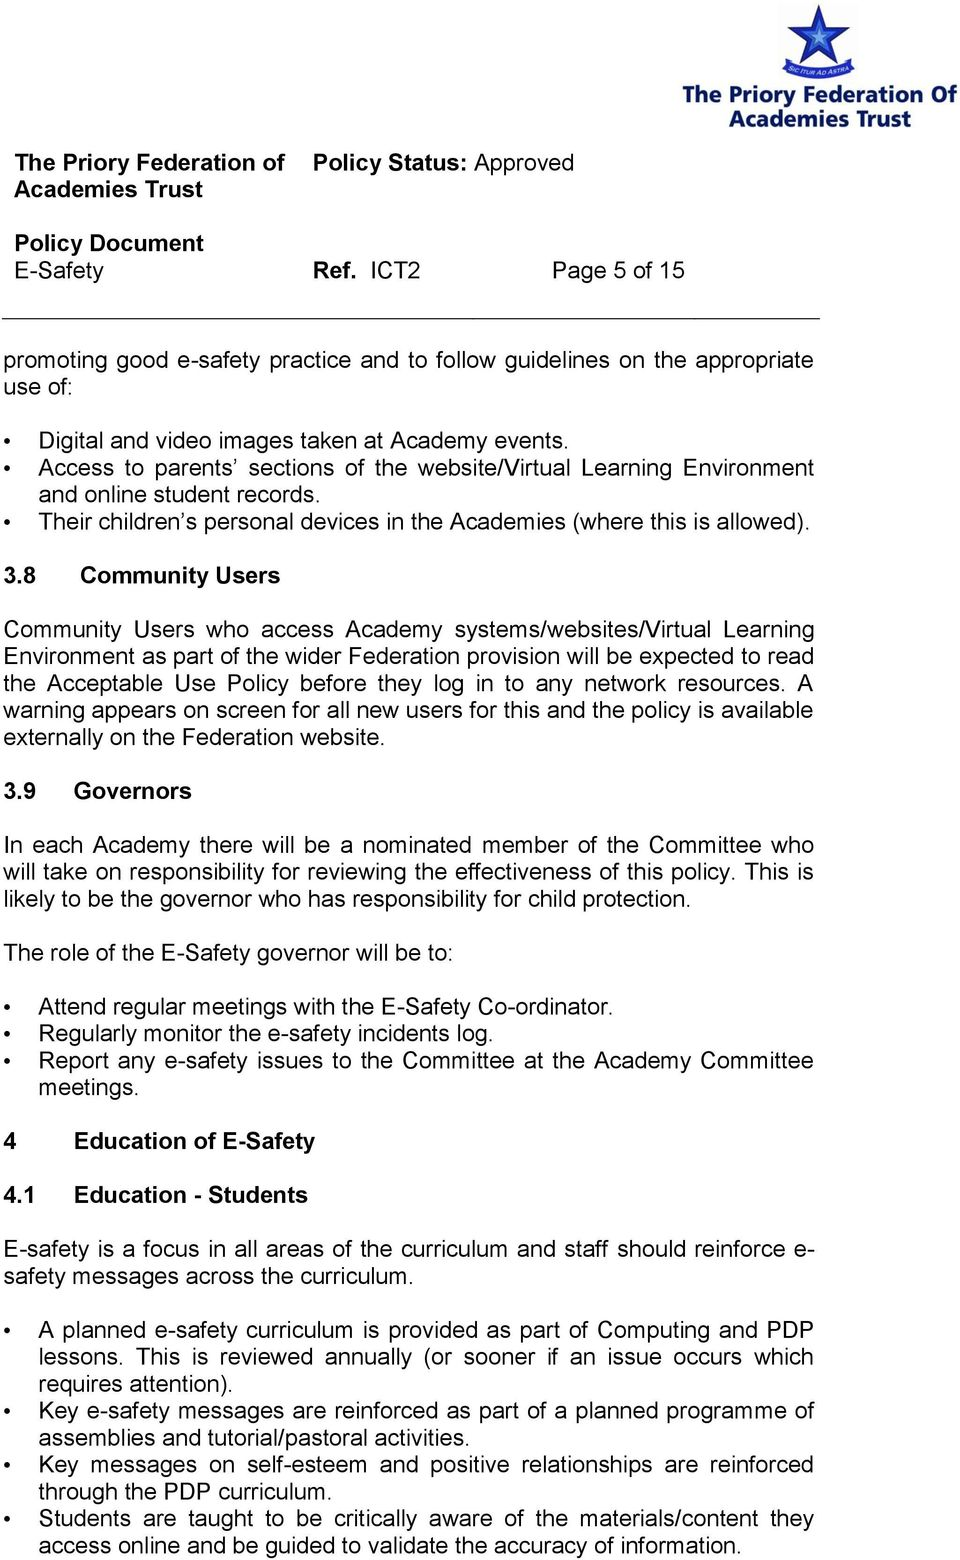 8 Community Users Community Users who access Academy systems/websites/virtual Learning Environment as part of the wider Federation provision will be expected to read the Acceptable Use Policy before